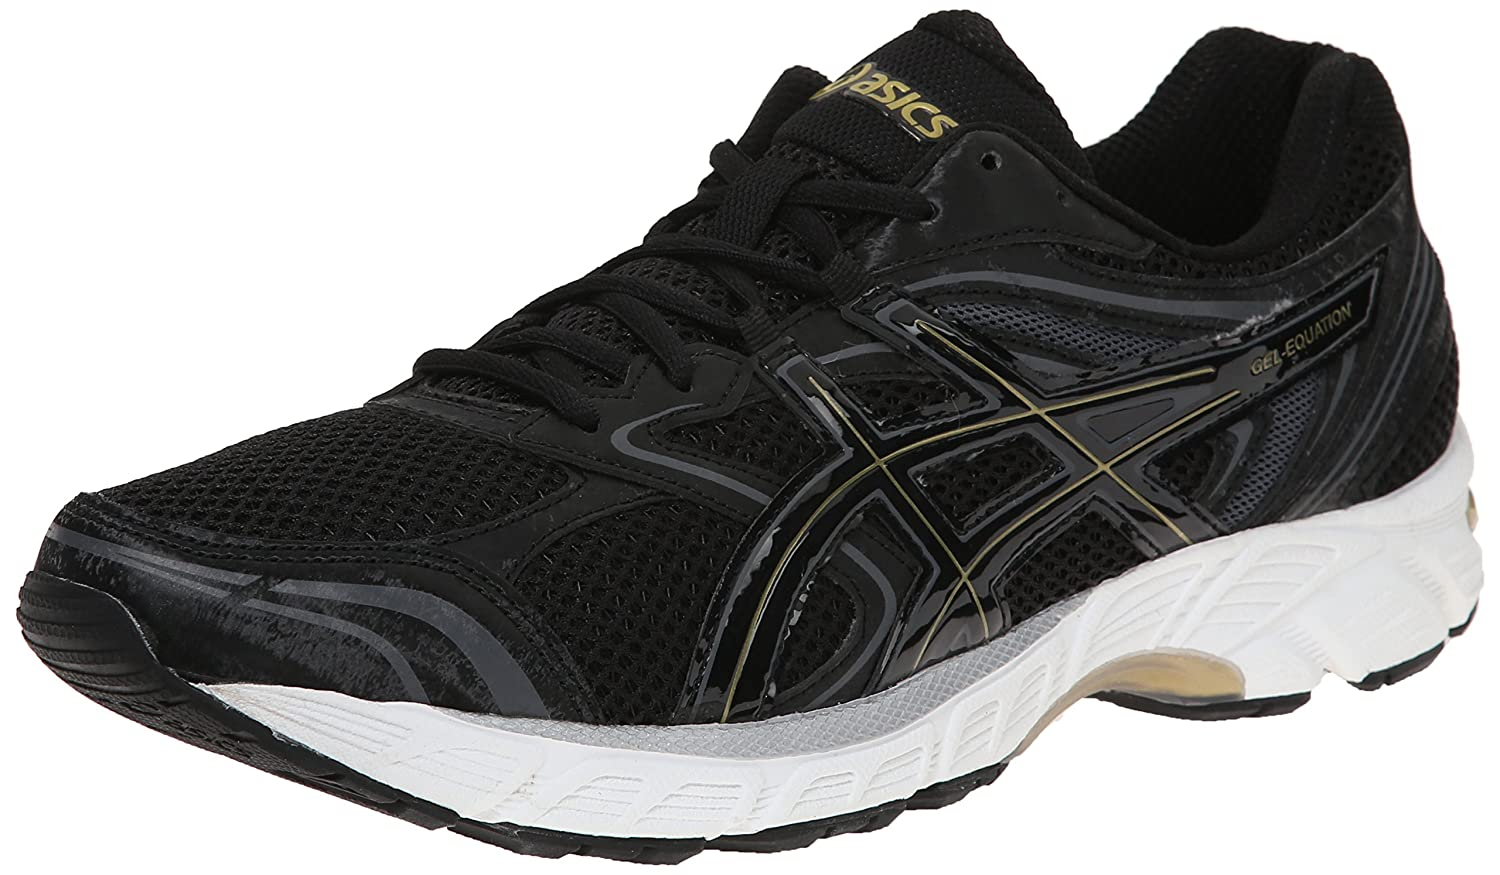 Gel Equation 8- Black running shoes